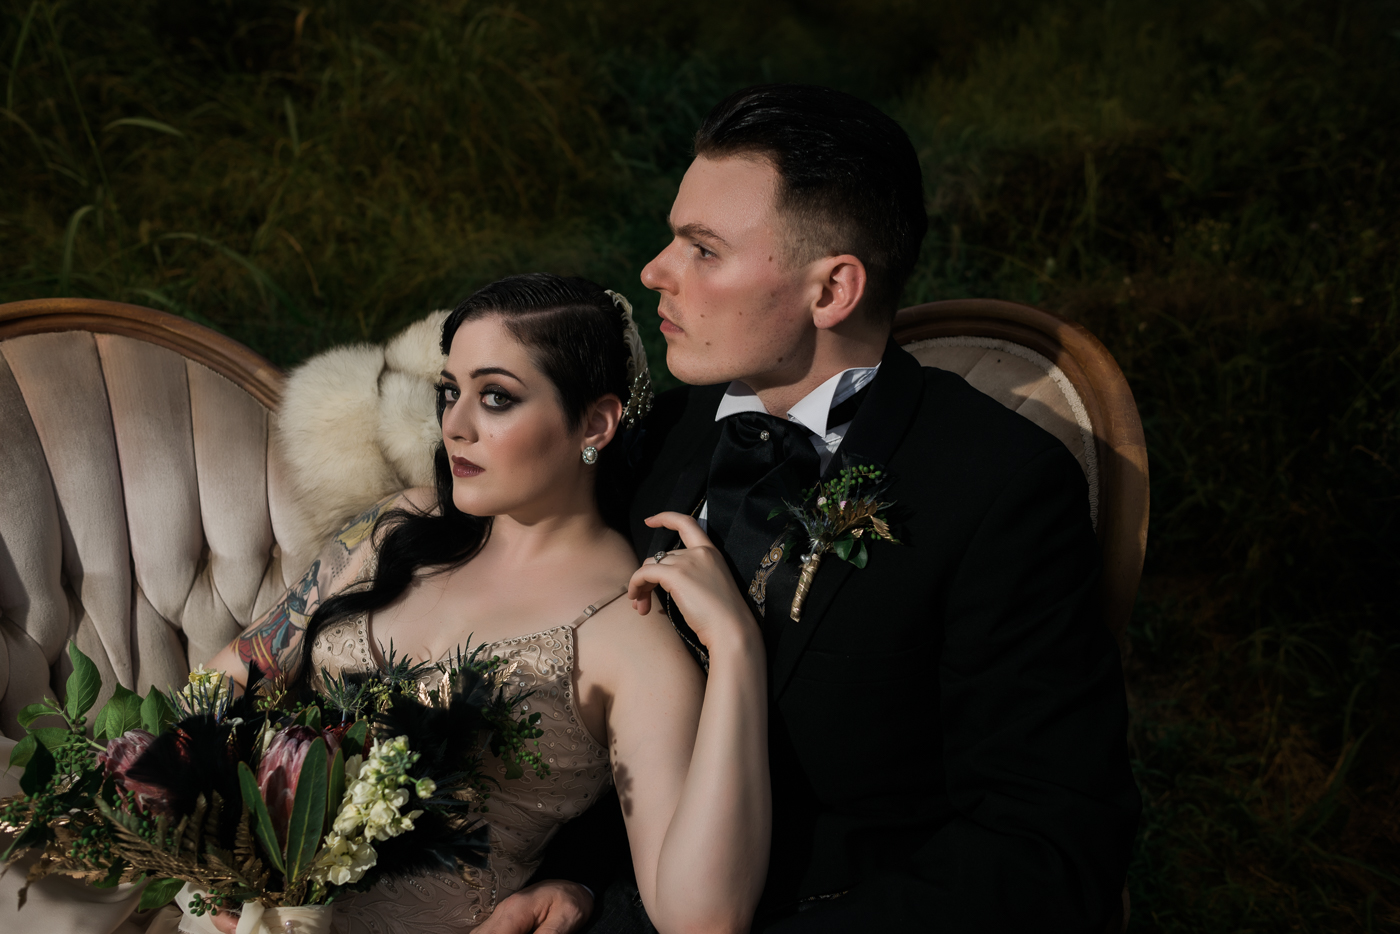 and-how-imaging-gothic-inspired-styled-shoot-gothic-wedding-1920s-theme-wedding-1920s-inspired-styled-shoot-halloween-styled-shoot-gothic-inspired-wedding-36